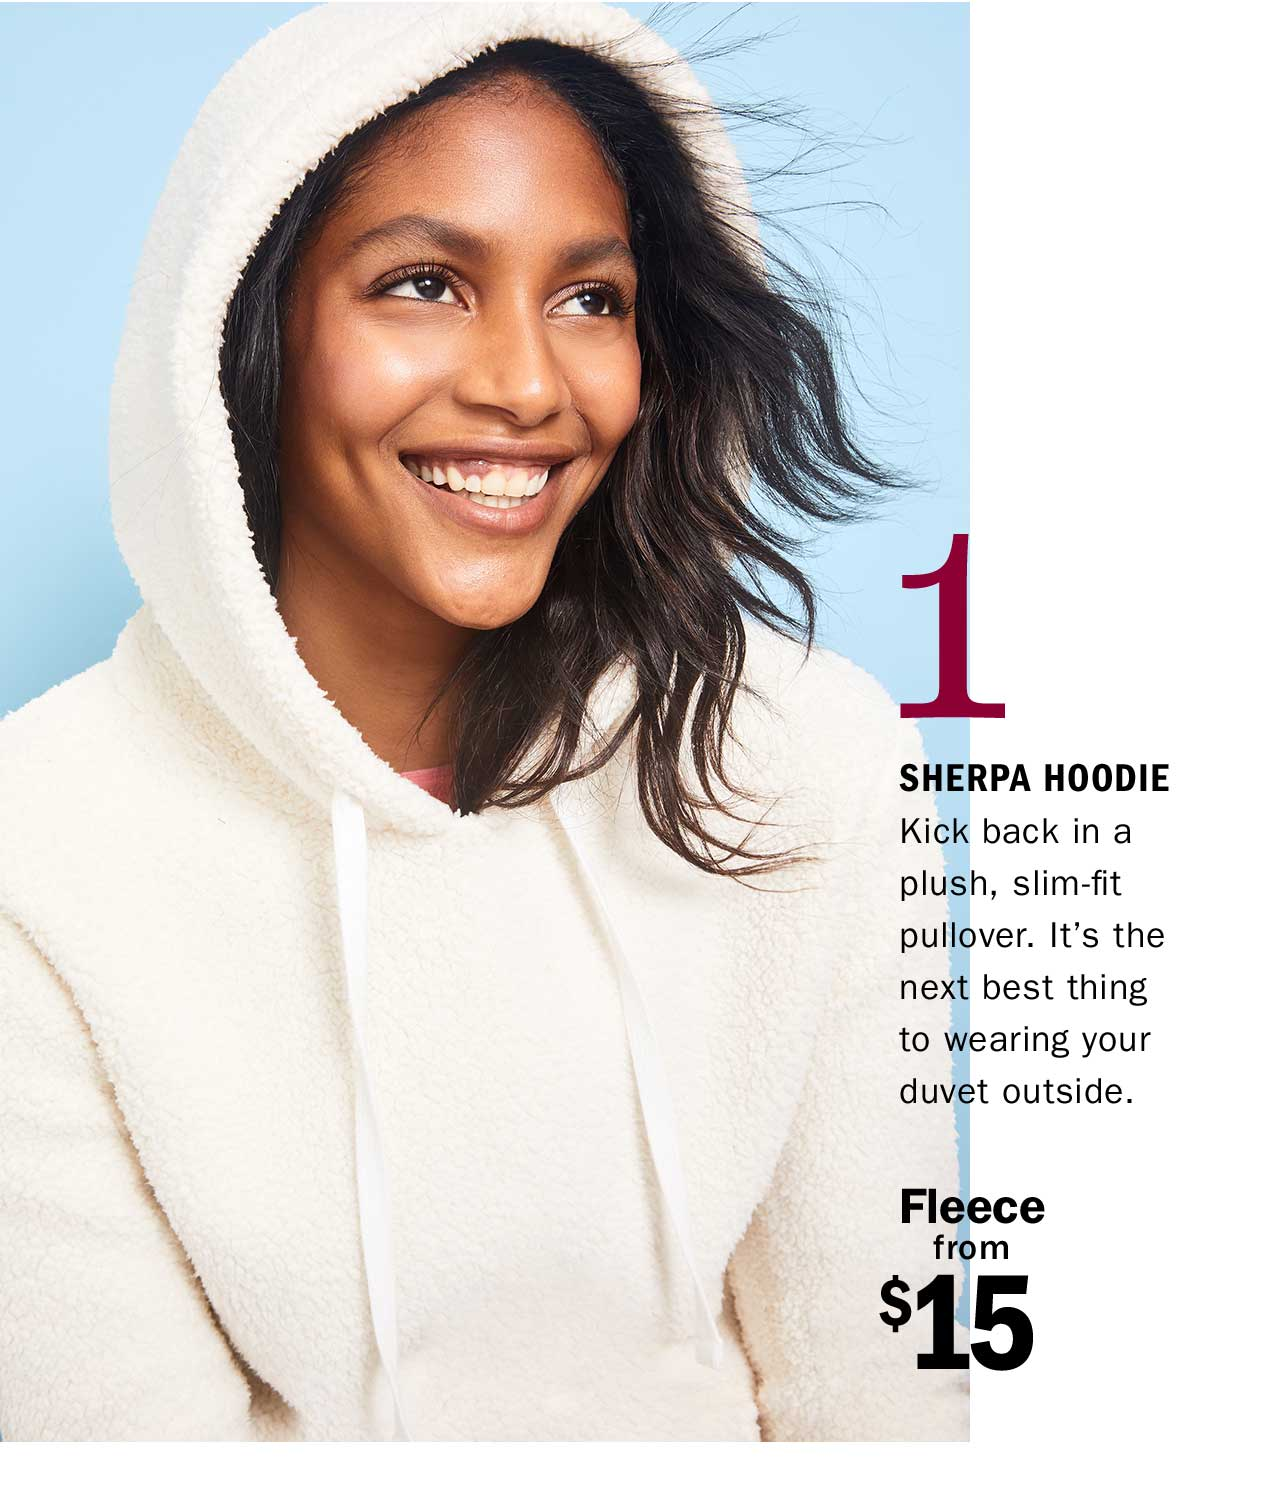 1 SHERPA HOODIE | Fleece from $15